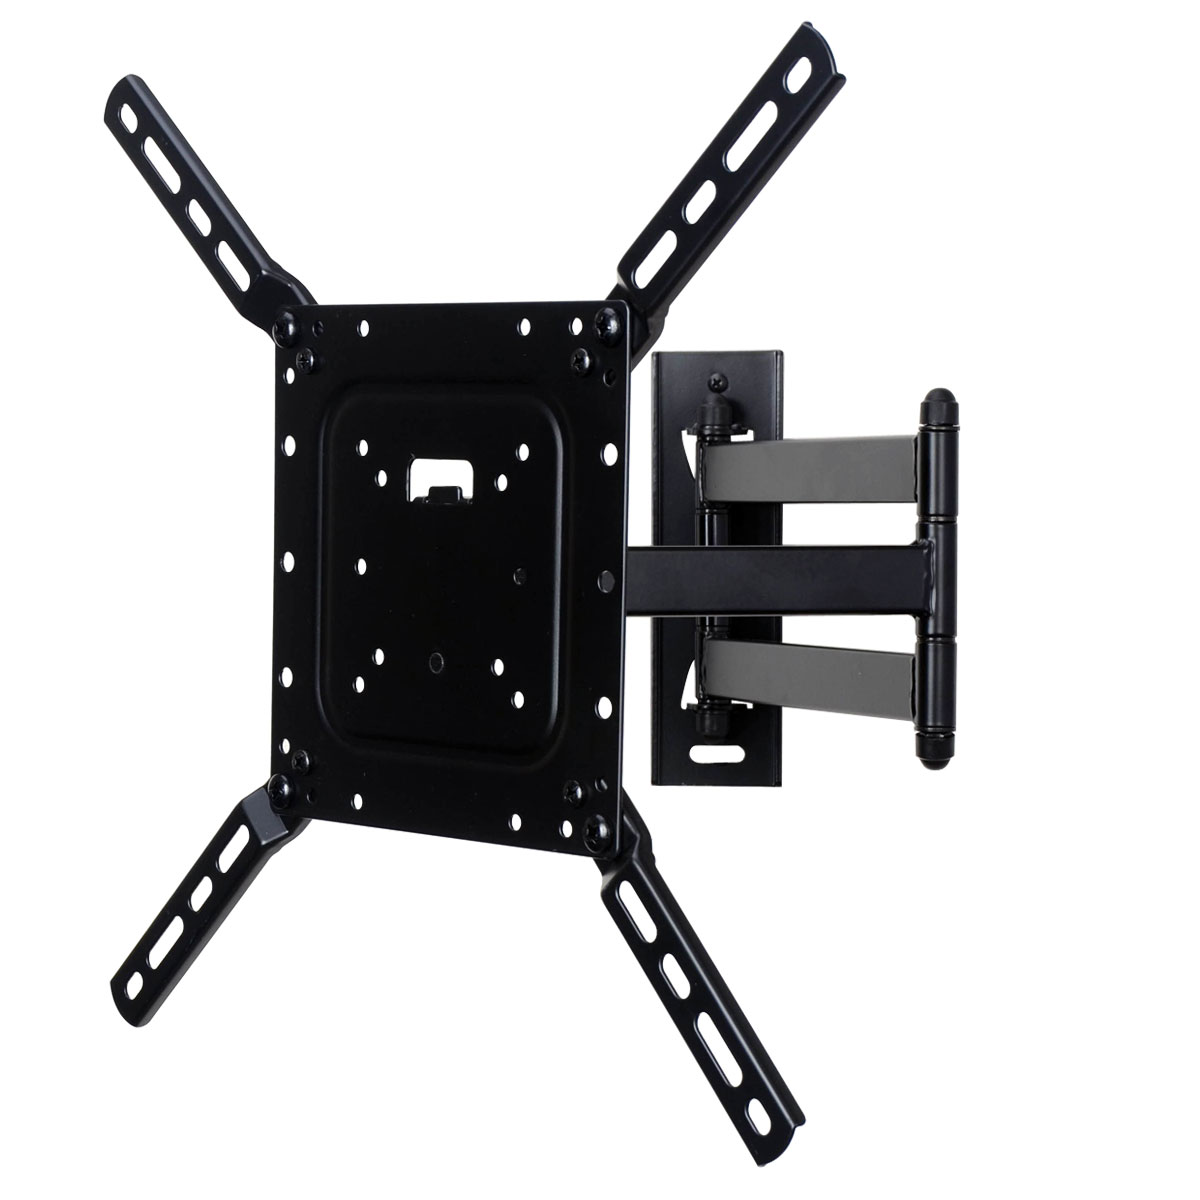 "VideoSecu Articulating TV Monitor Wall Mount Bracket for Most LG 32 42 47 50 55"" LED LCD Plasma Tilt Swivel bj2"